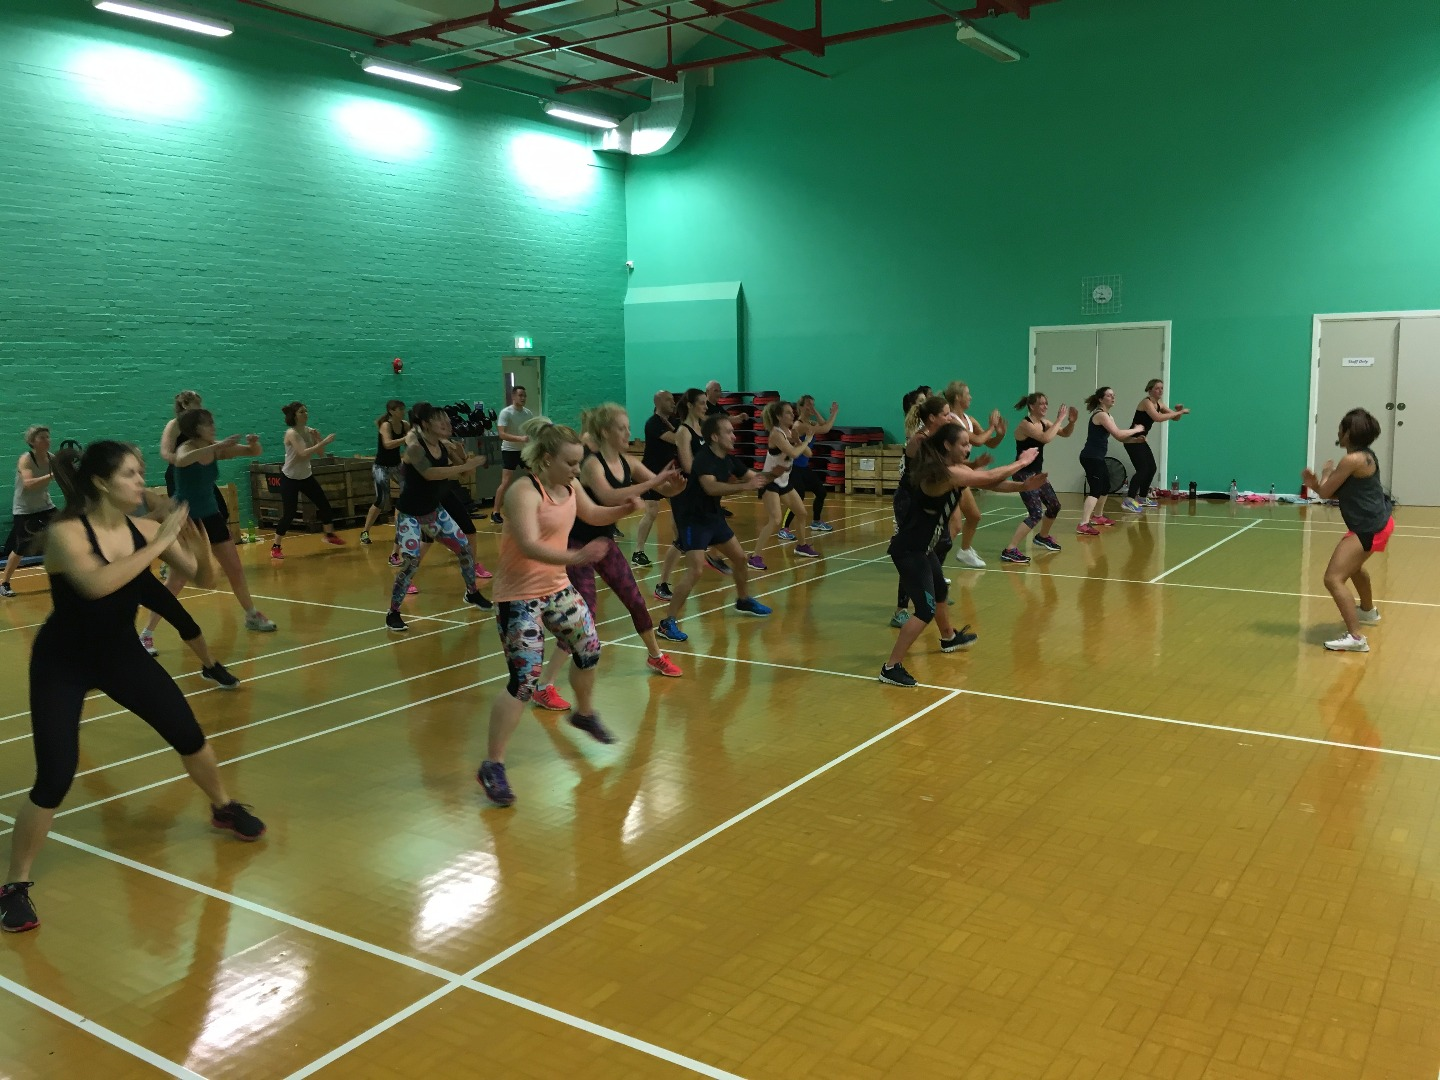 Les Mills Experience BODYCOMBAT class